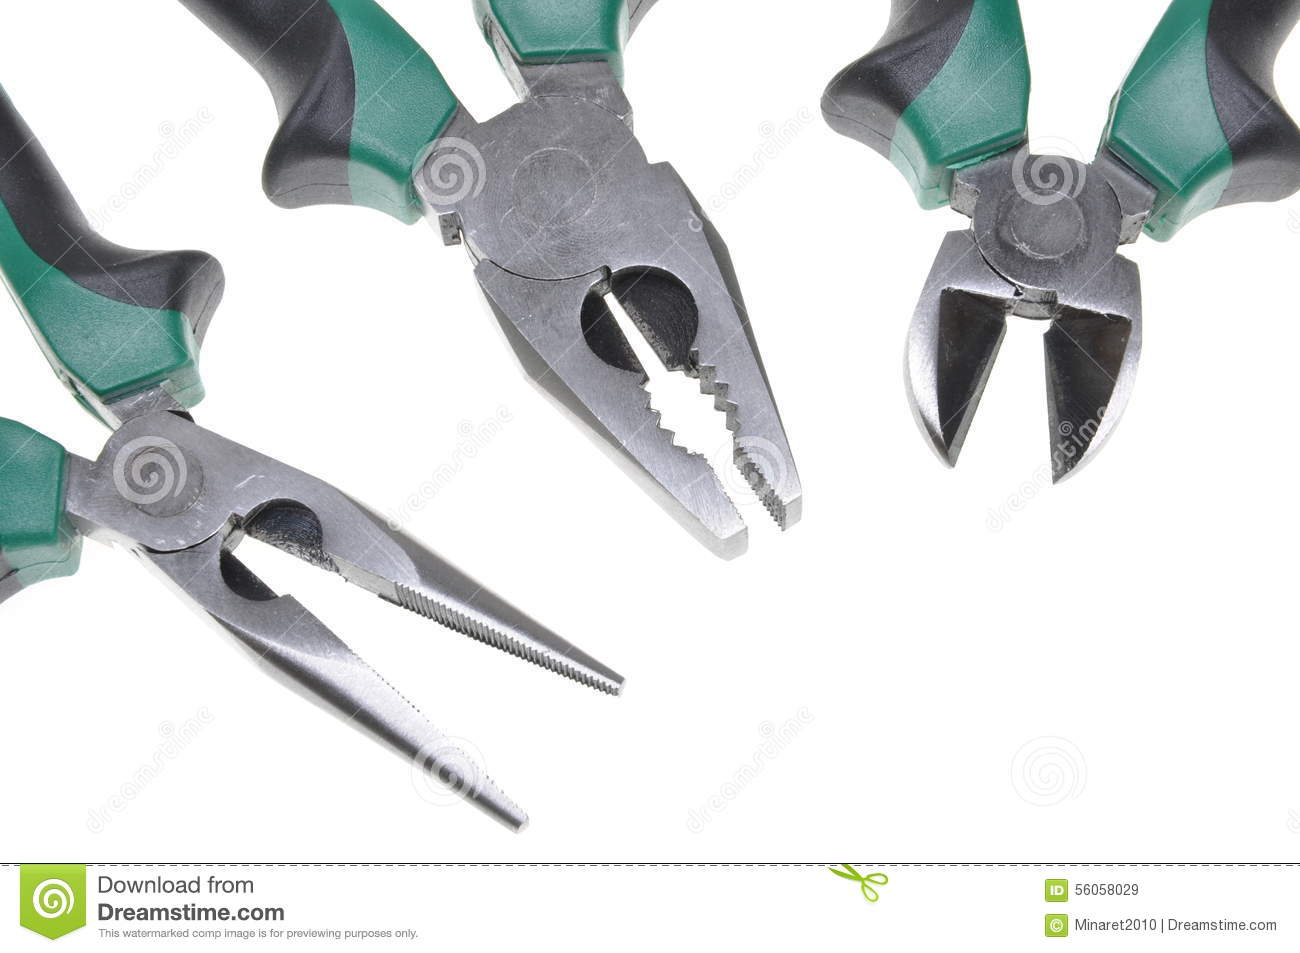 Pliers tools for electrician isolated